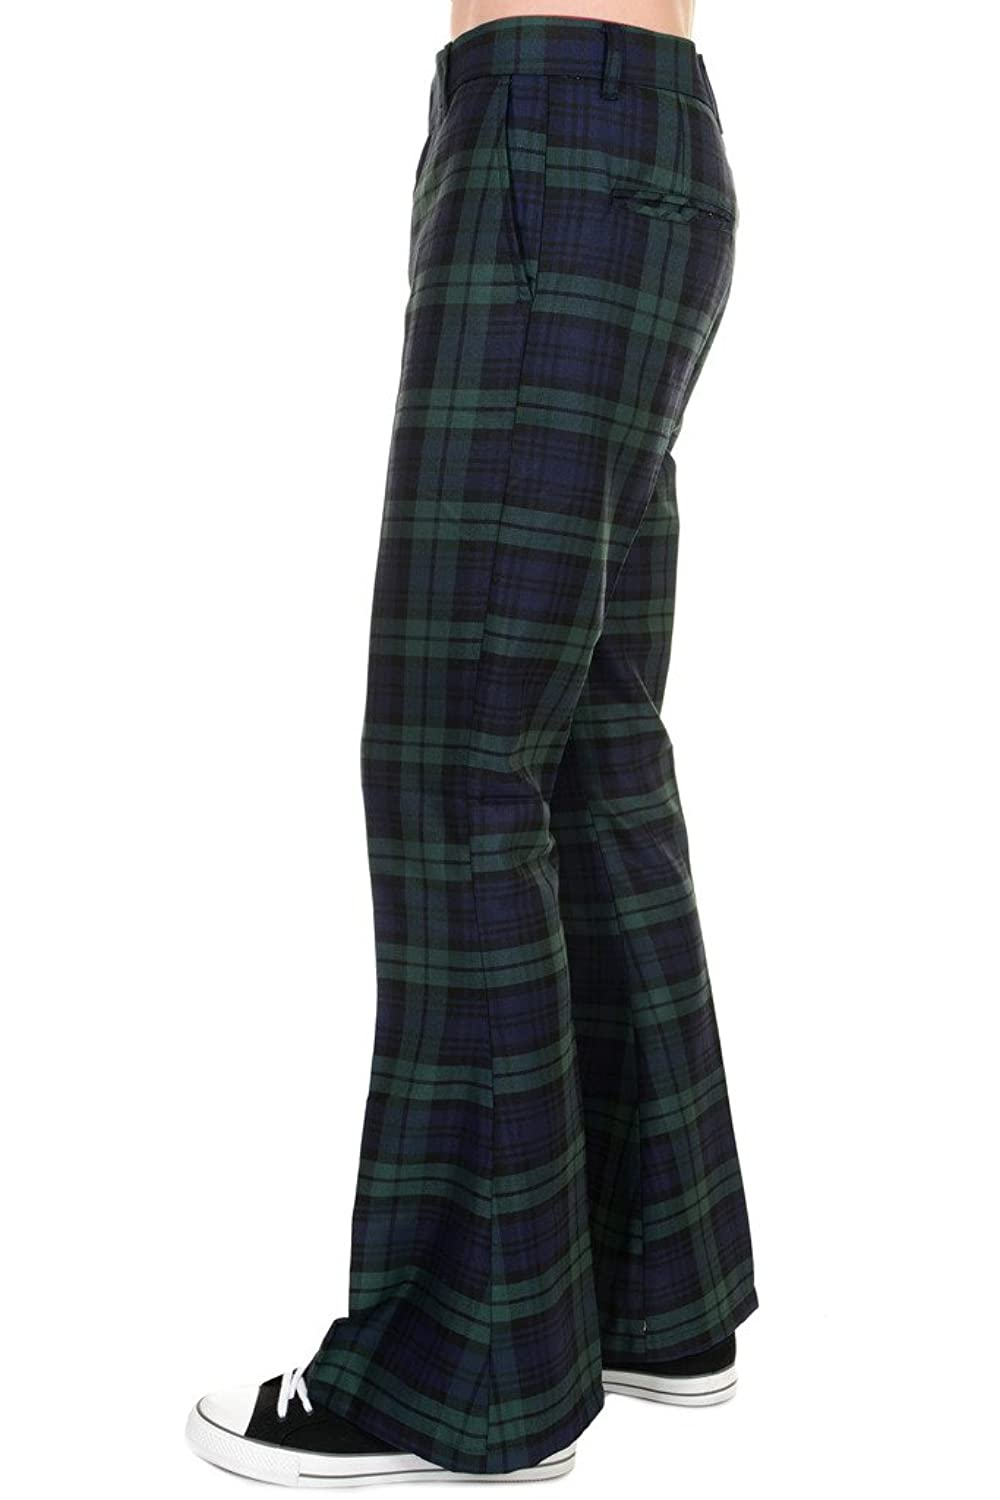 1960s Style Men's Clothing, 70s Men's Fashion Mens Run & Fly 60s 70s Vintage Blackwatch Tartan Plaid Bell Bottom Trousers $47.95 AT vintagedancer.com